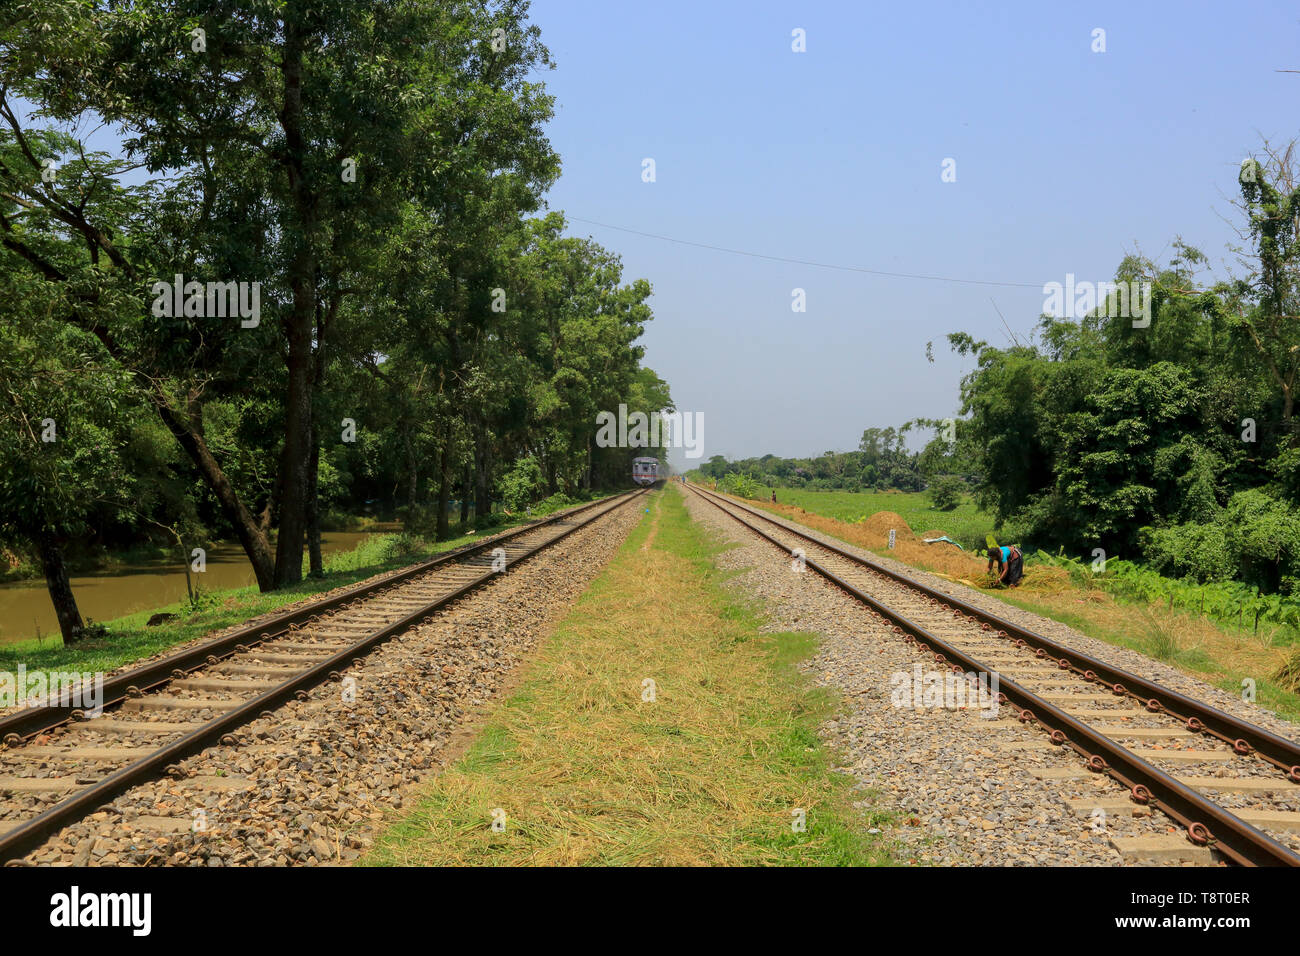 The Dhaka-Chittagong double track rail line at Narsingdi, Bangladesh - Stock Image